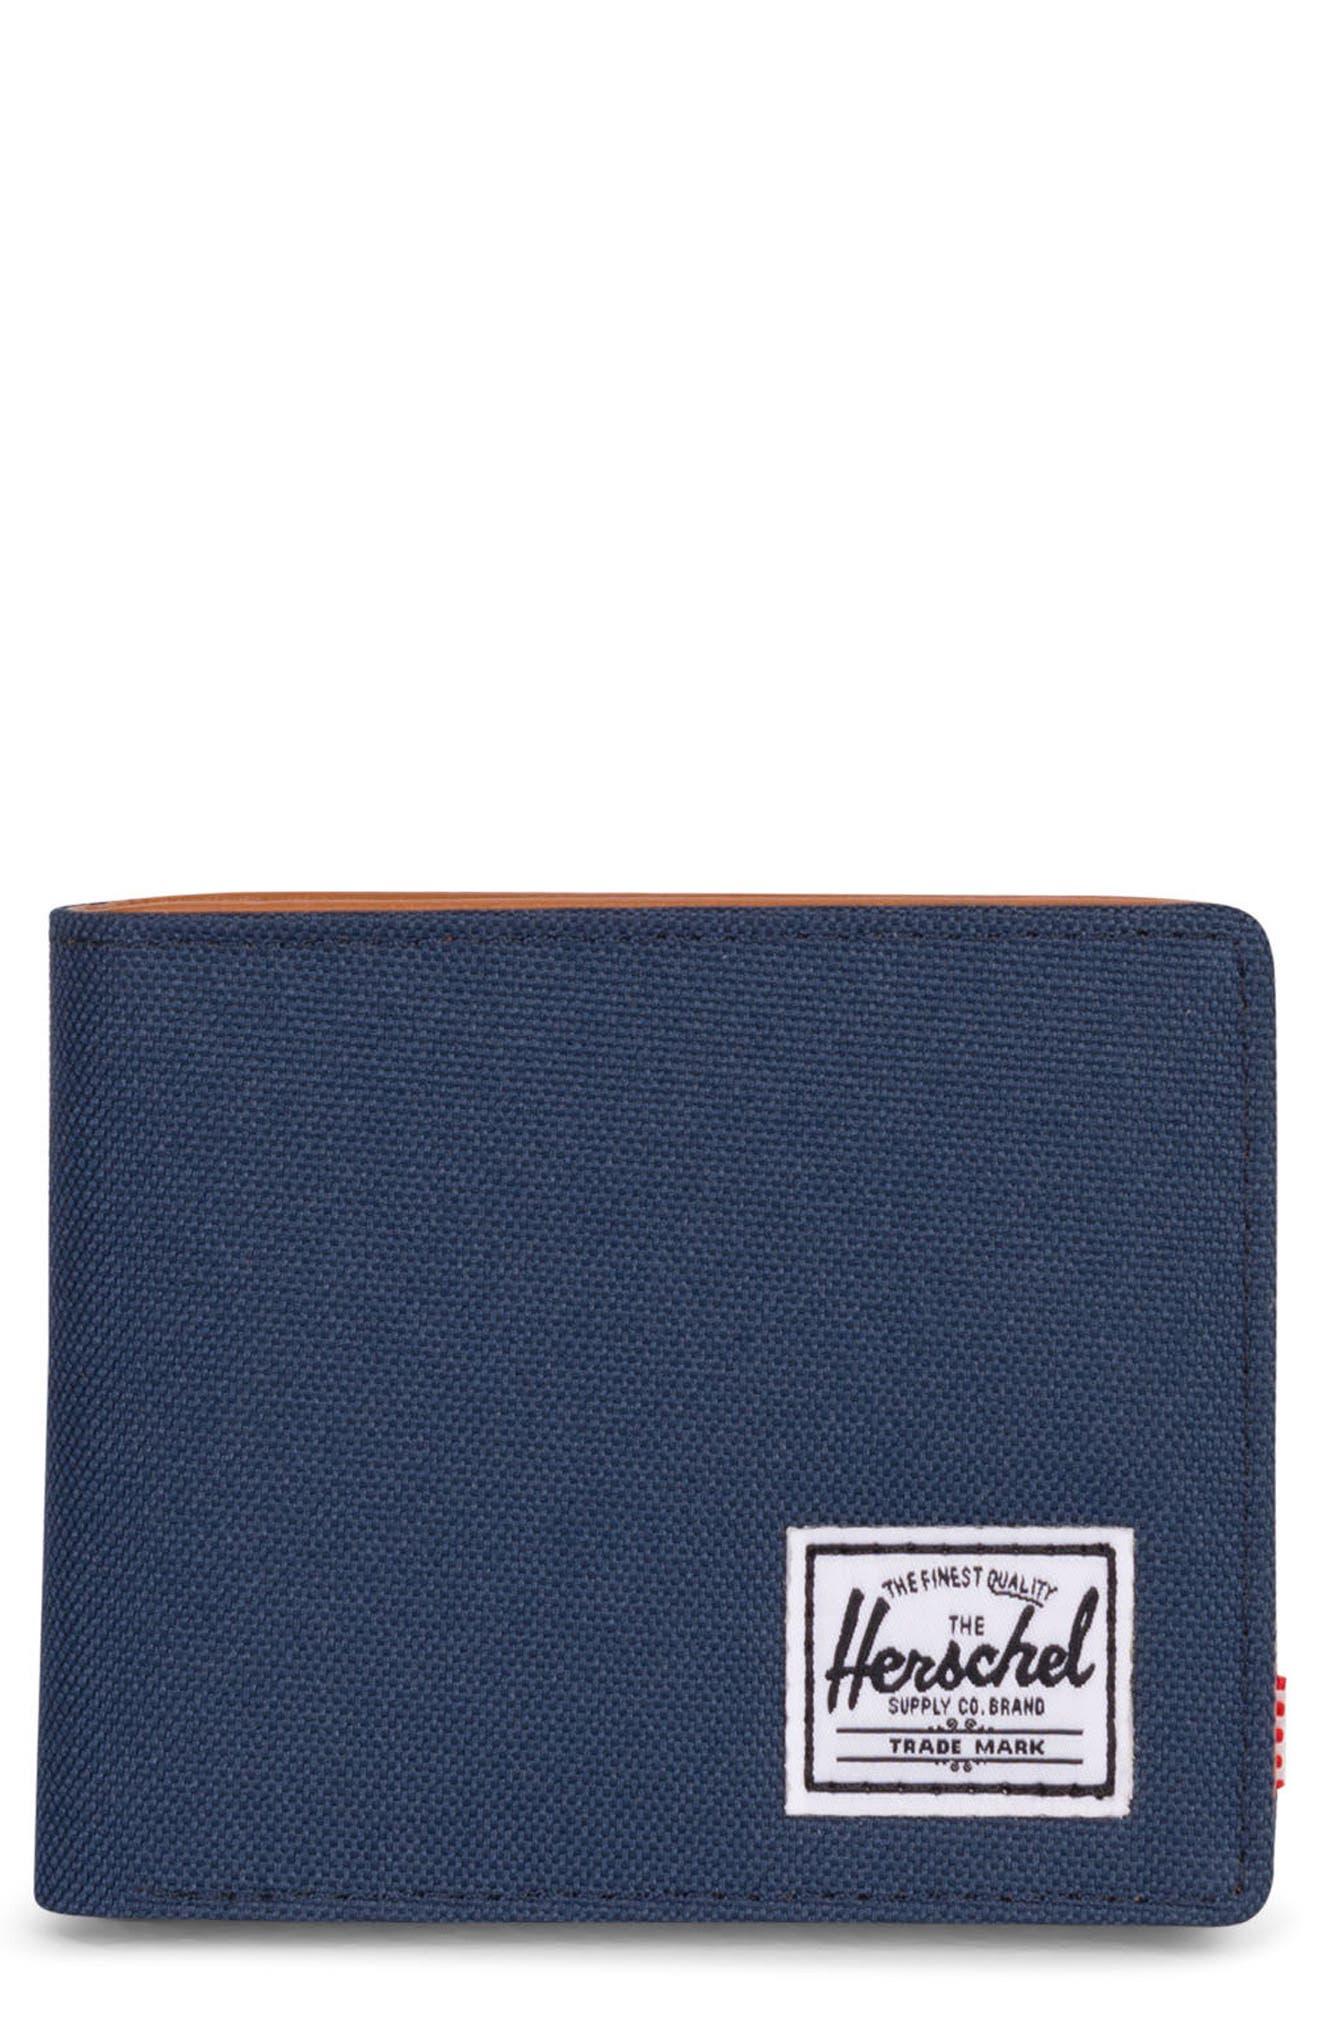 HERSCHEL SUPPLY CO., Hank RFID Bifold Wallet, Main thumbnail 1, color, NAVY/ TAN